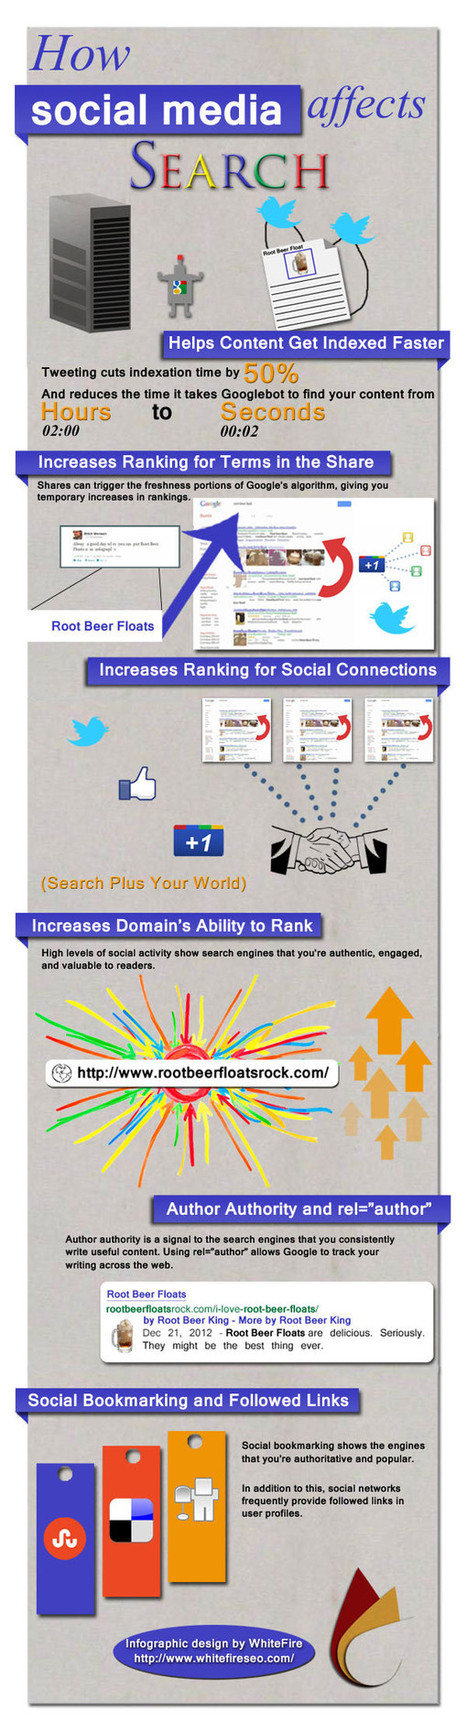 How Social Media Impacts SEO and Site Ranking: infographic | Social Media Magazine(SMM): Social Media Content Curation & Marketing Strategies | Scoop.it